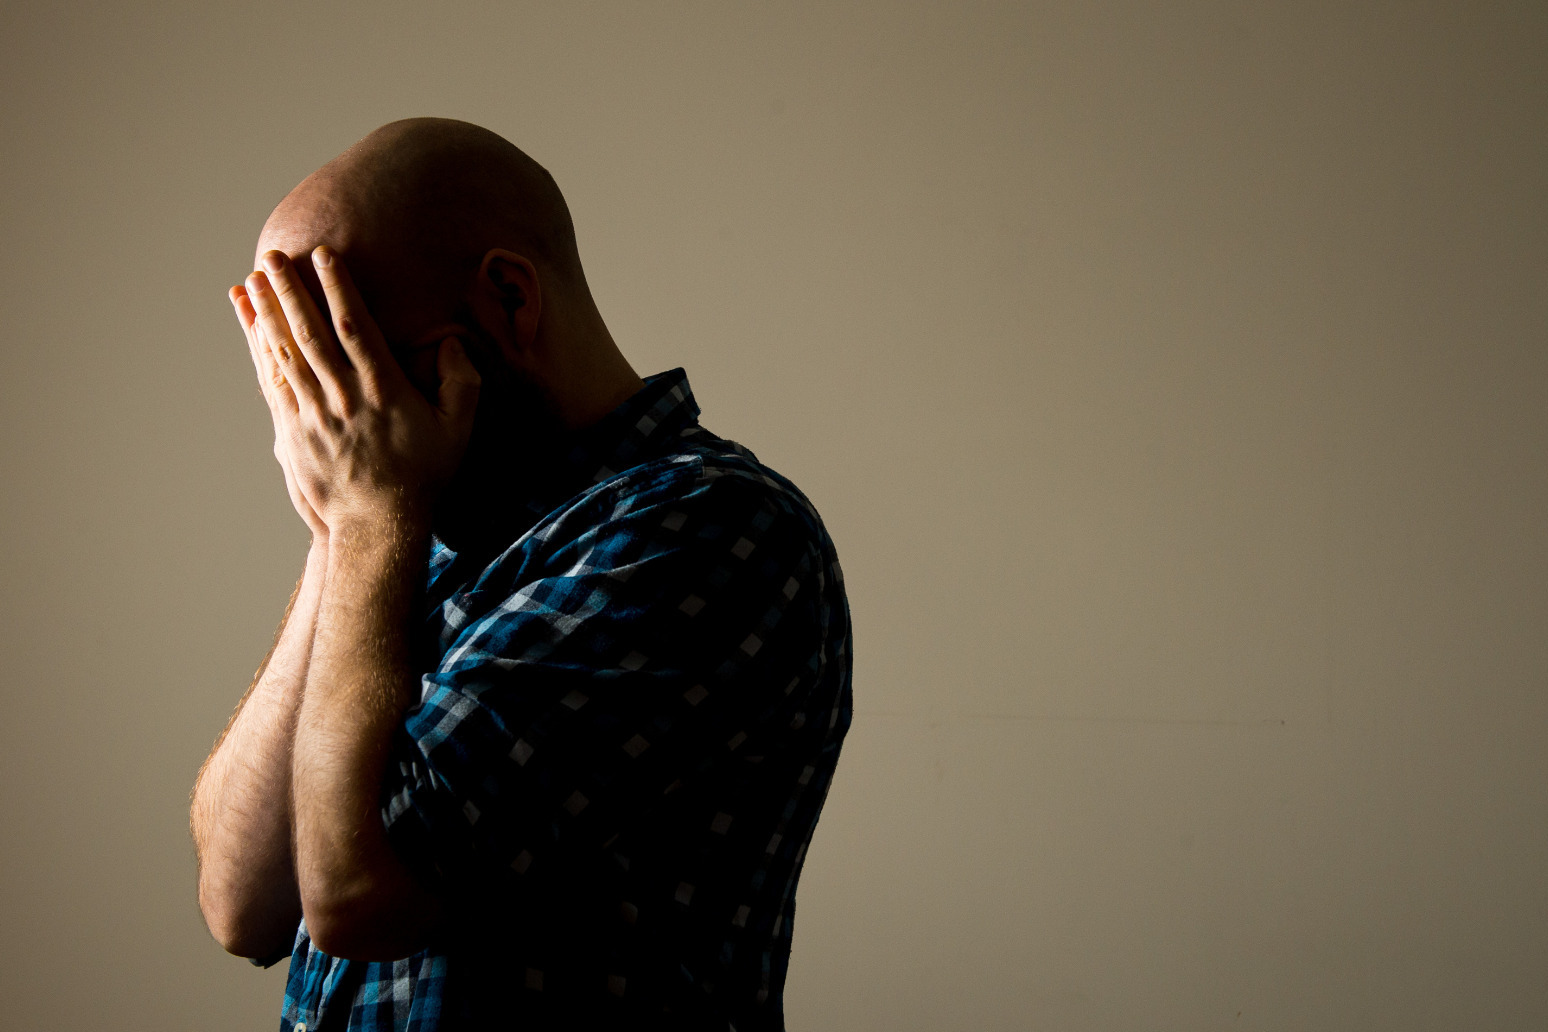 Experts outline top tips for good mental health and warn against 'miracle cures'